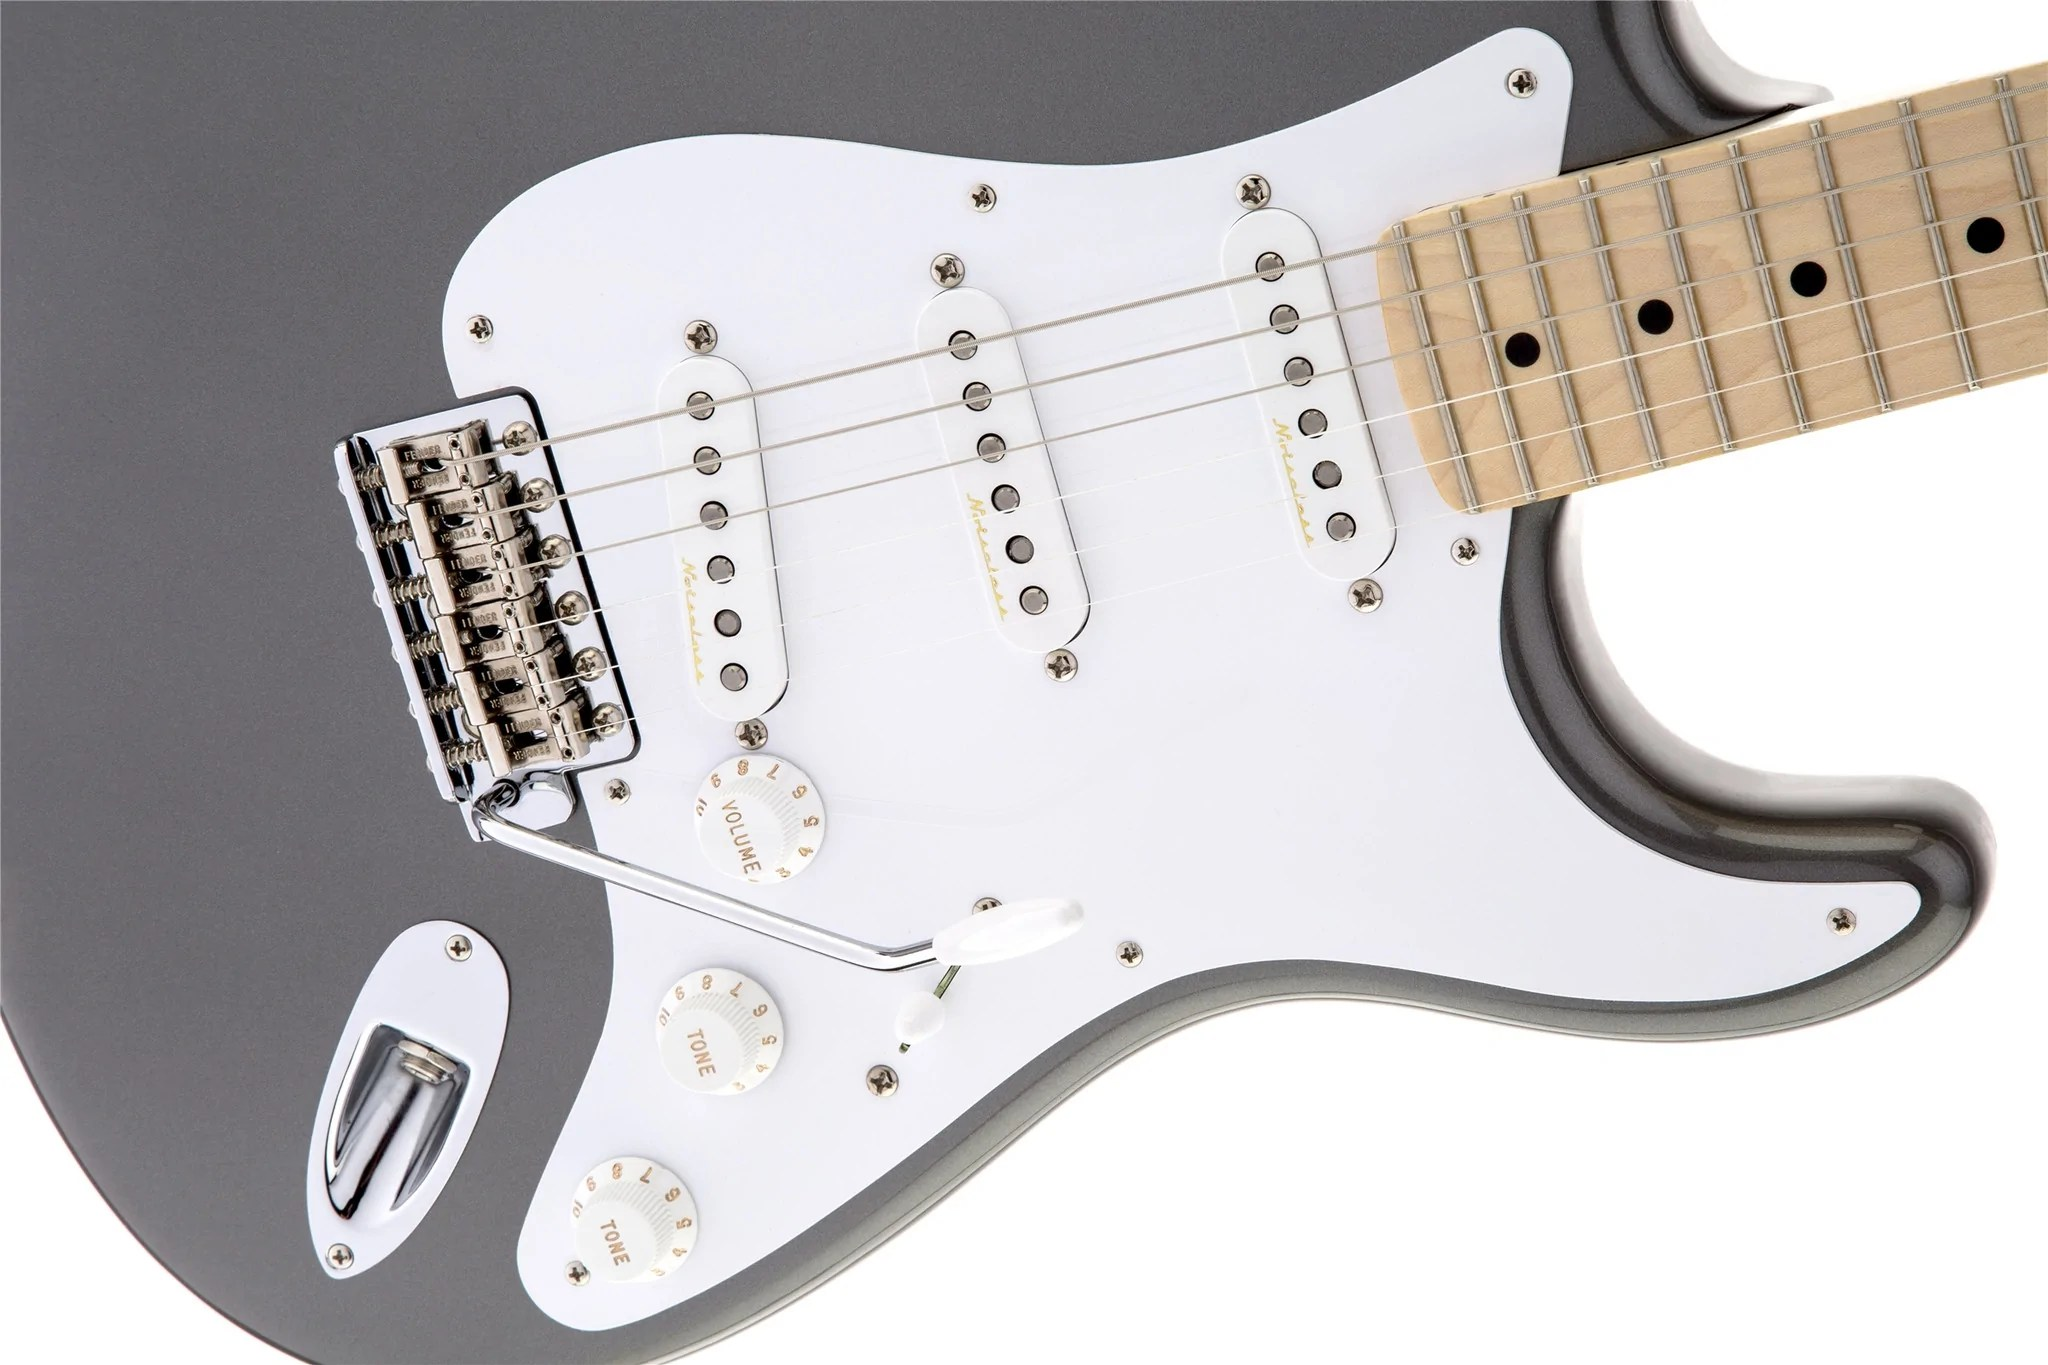 small resolution of  pewter 0117602843 fender eric clapton stratocaster maple fingerboard pewter 0117602843 l a music canada s